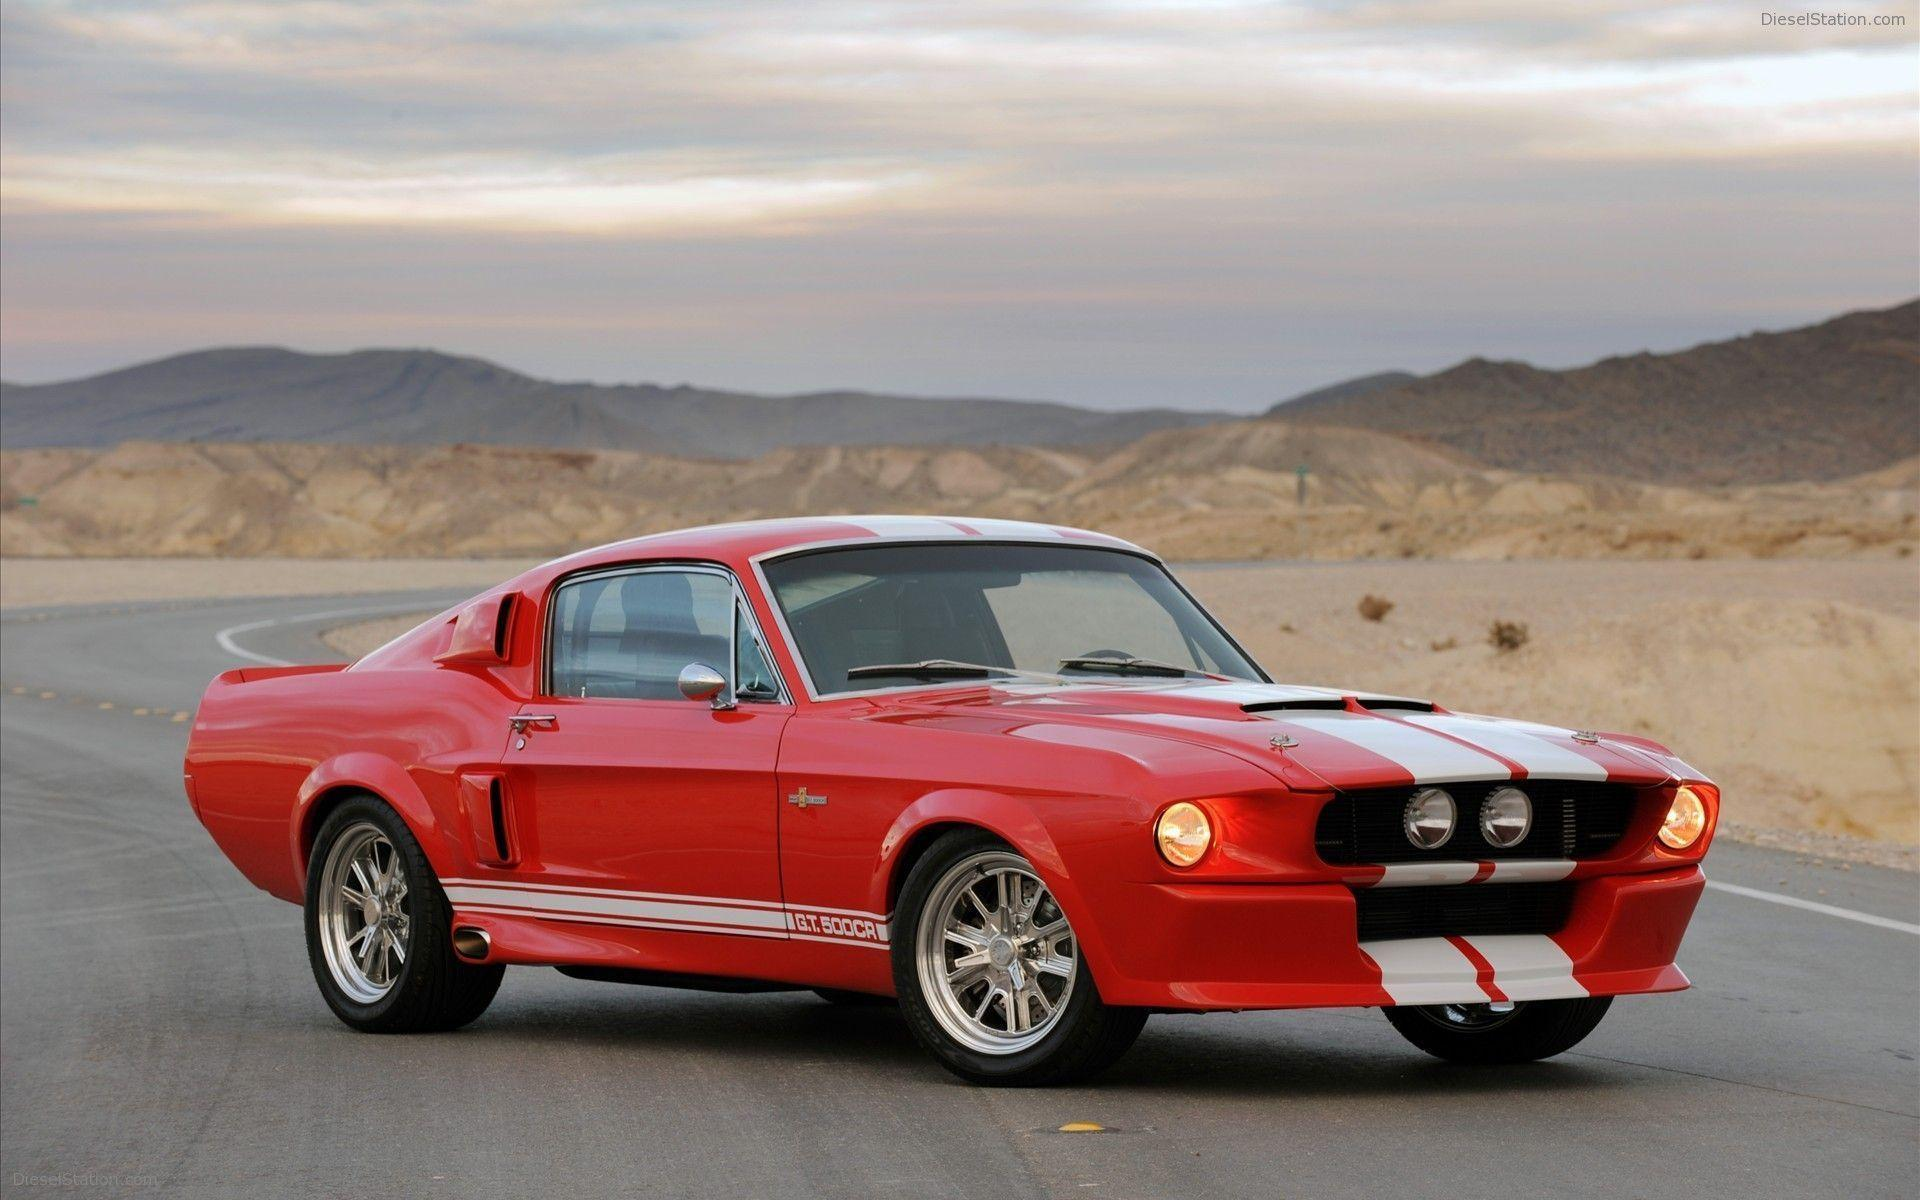 67 Mustang Wallpapers Wallpaper Cave